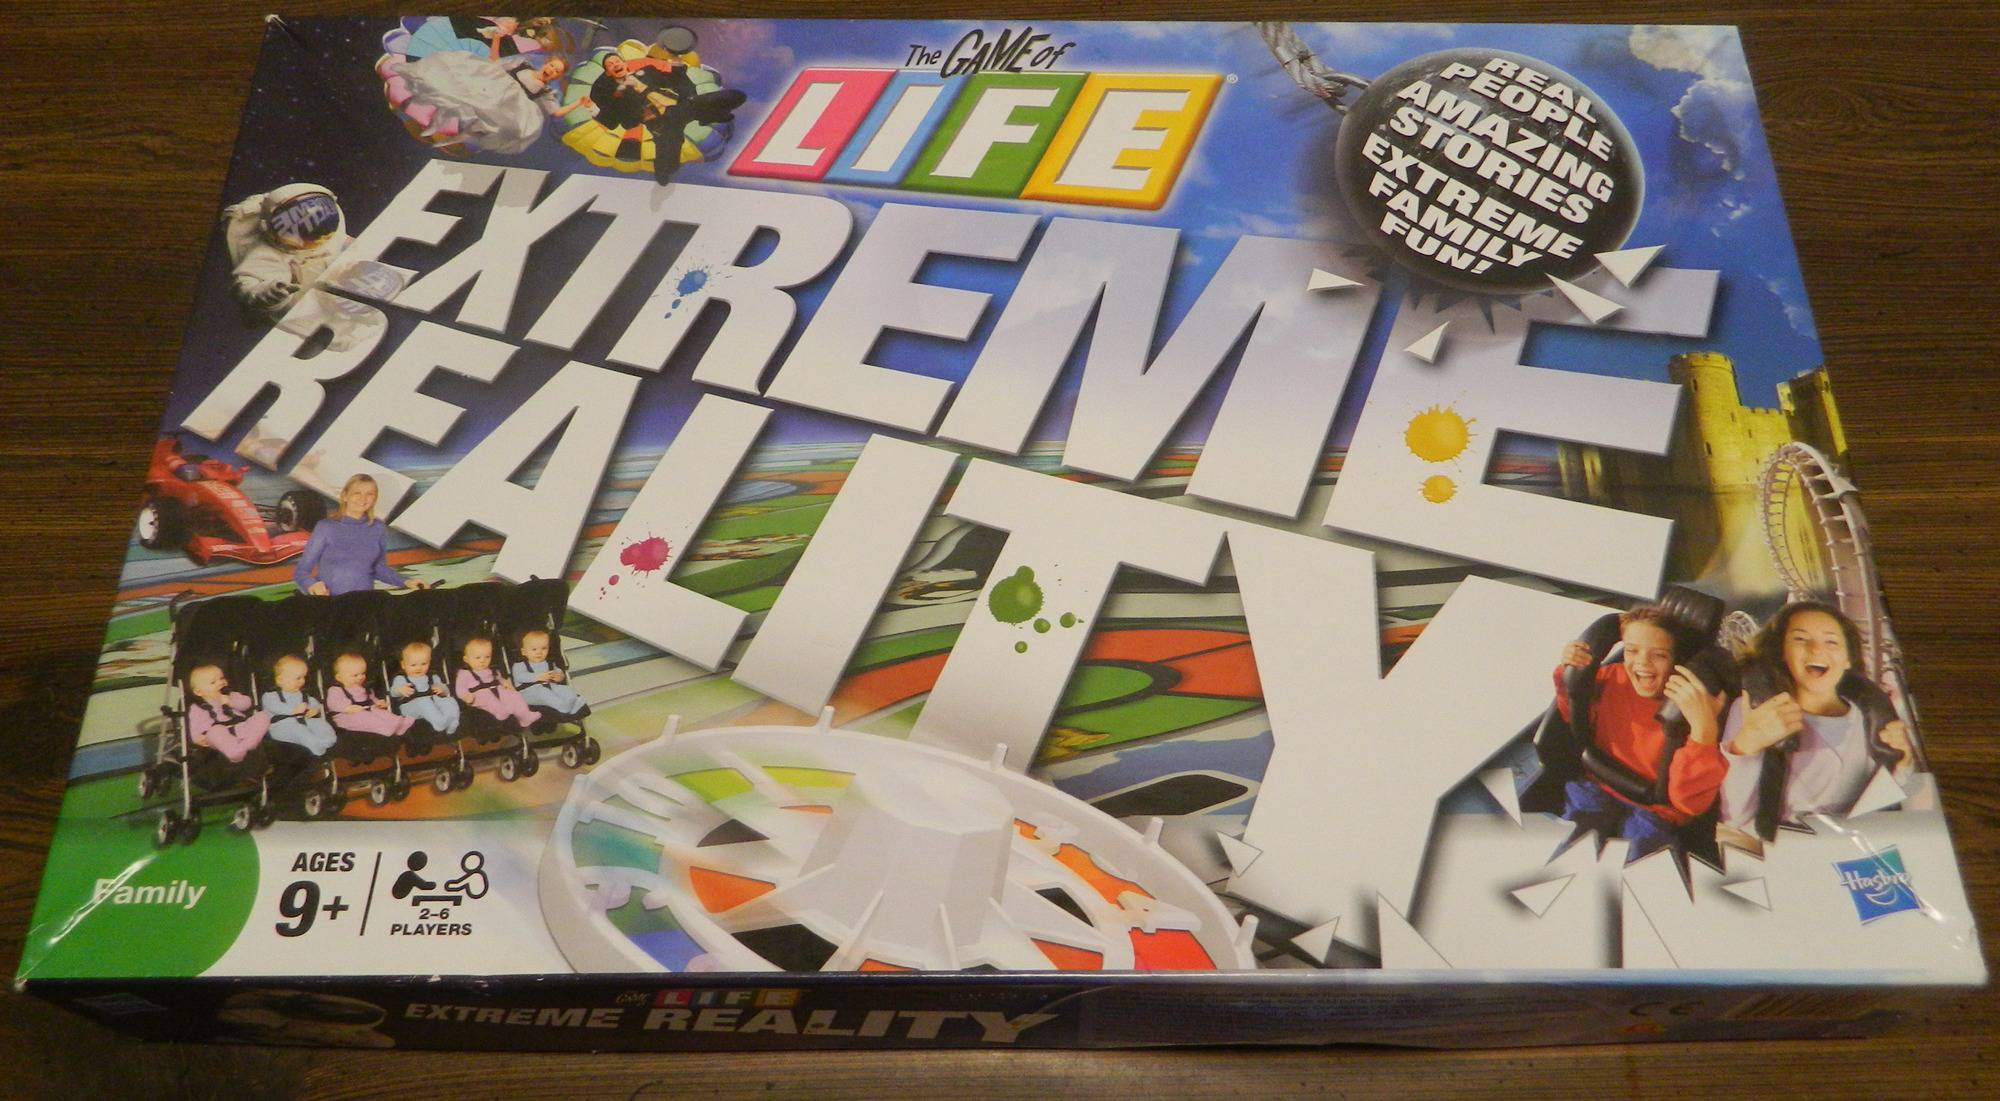 The Game of Life: Extreme Reality Board Game Review and